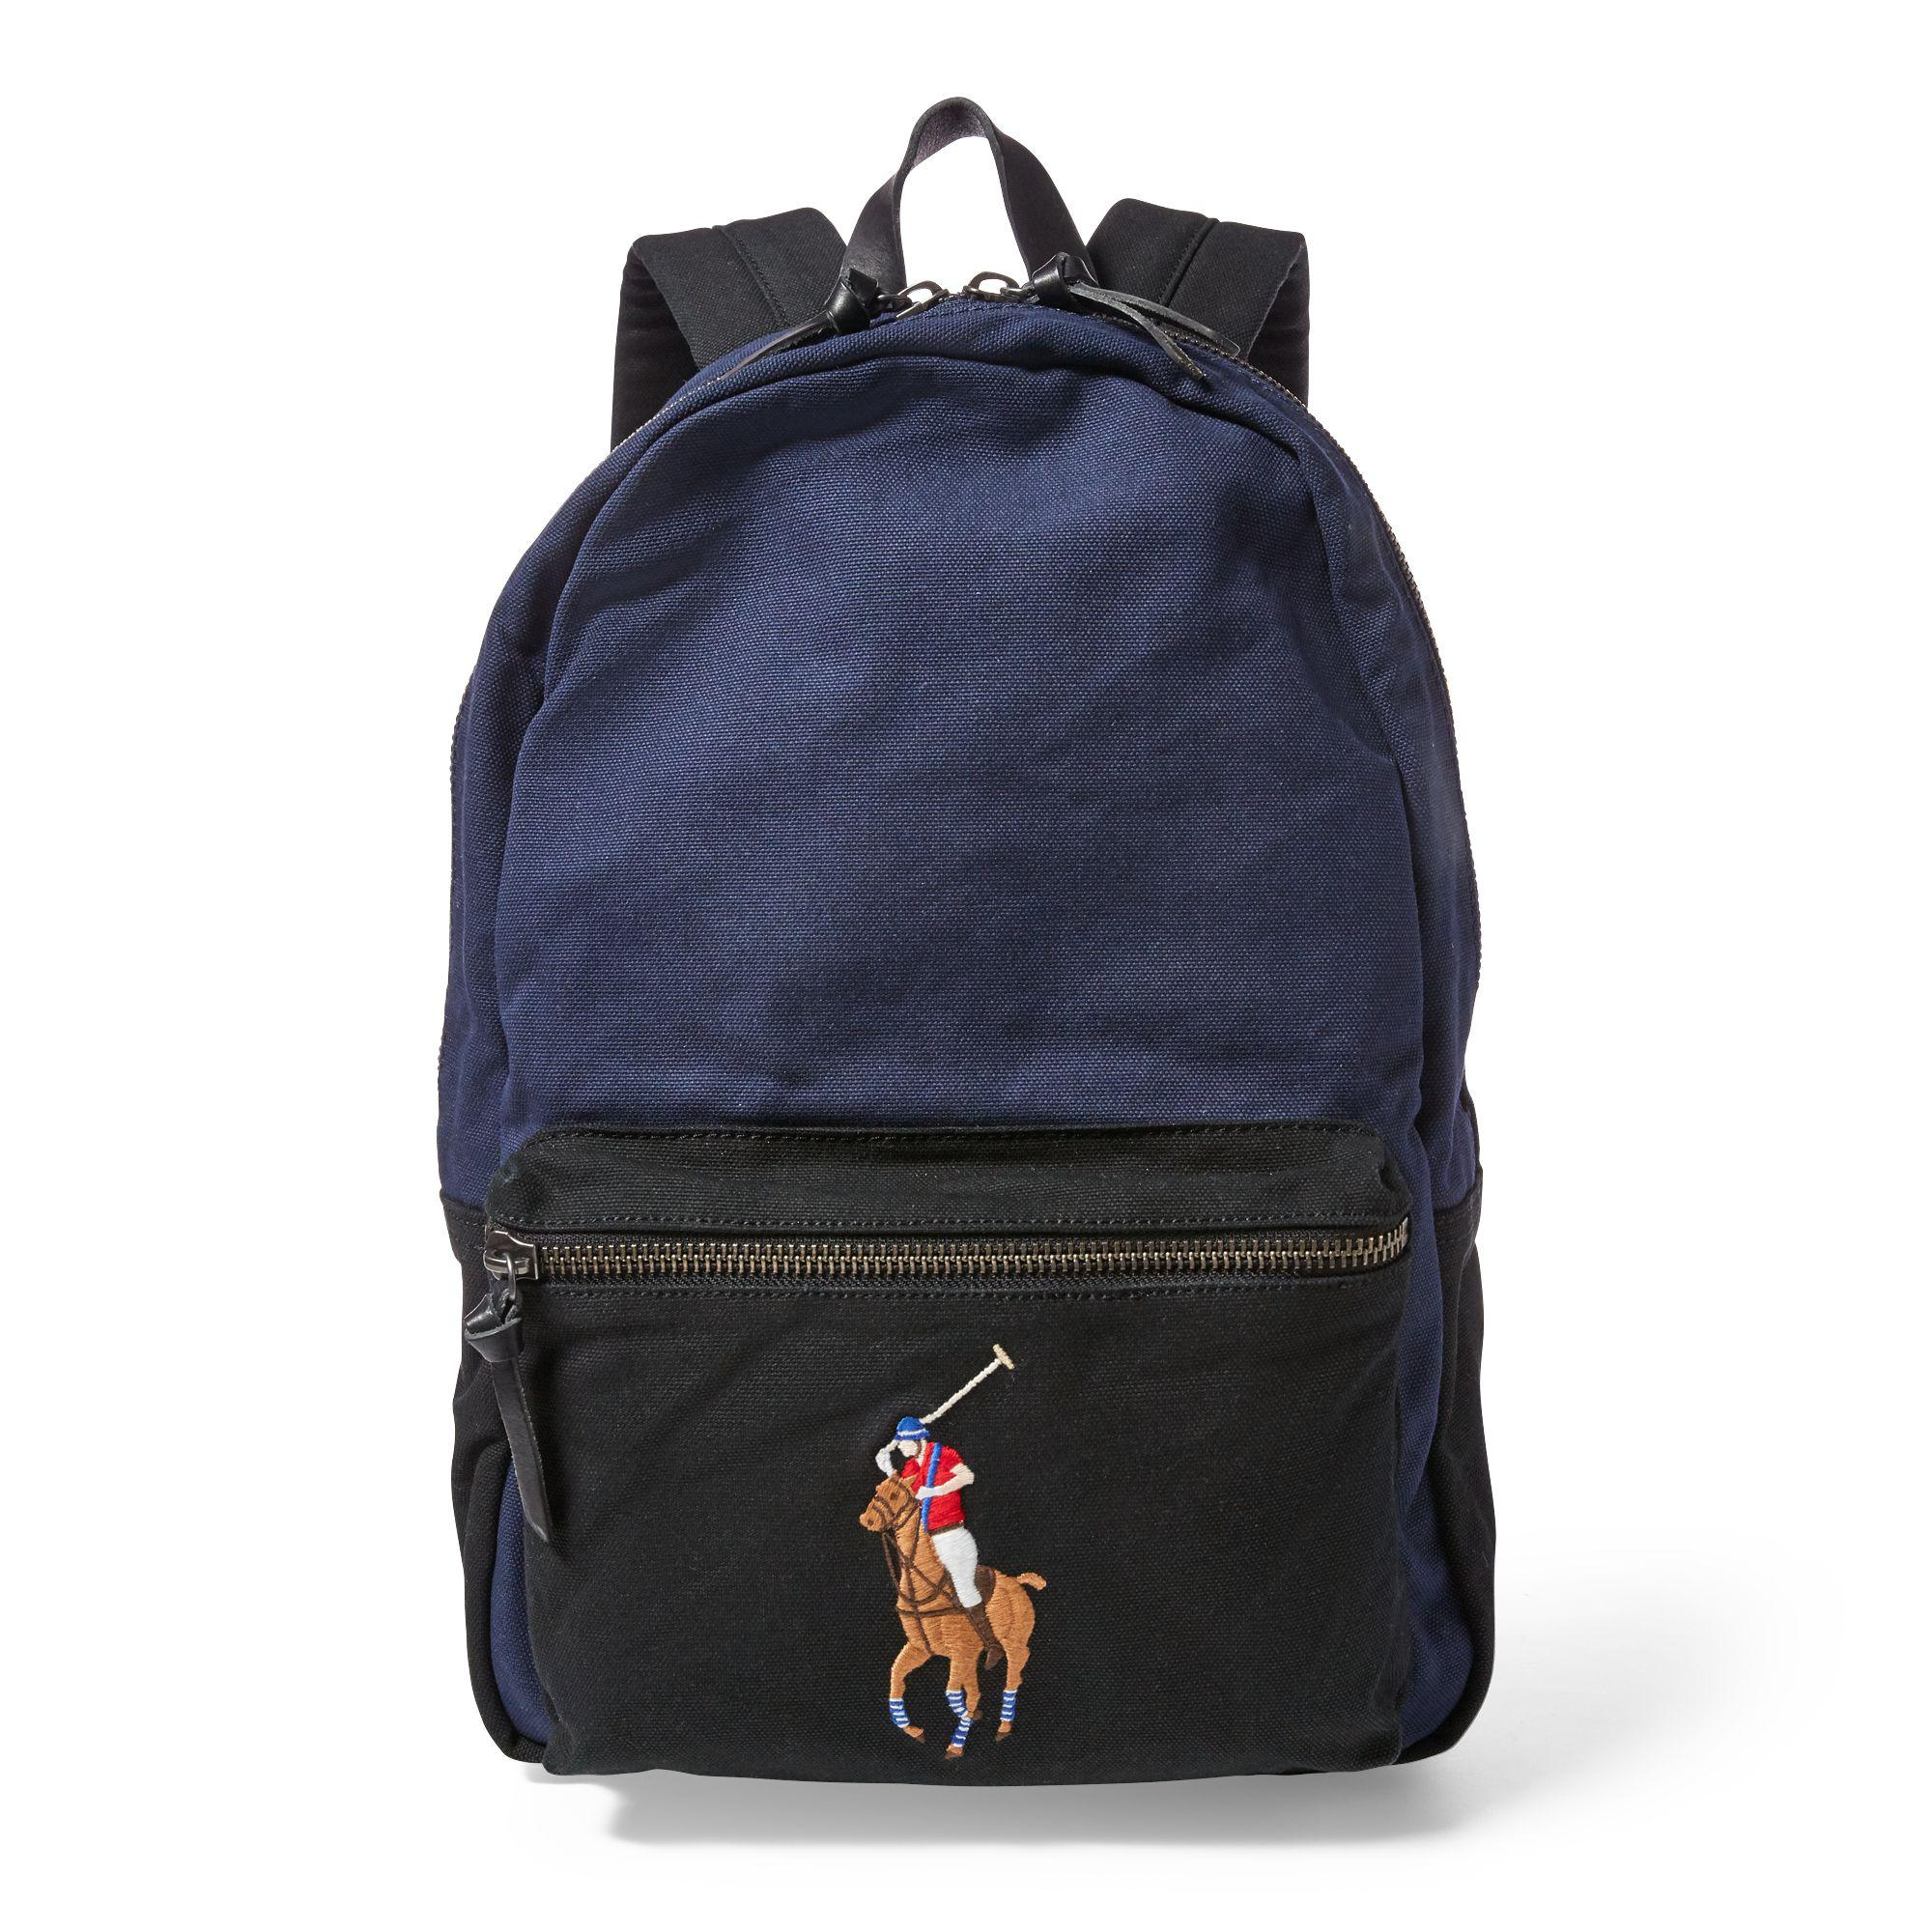 1385c0f76dba Polo ralph lauren canvas big pony backpack for men lyst jpg 2000x2000 Polo  canvas backpack